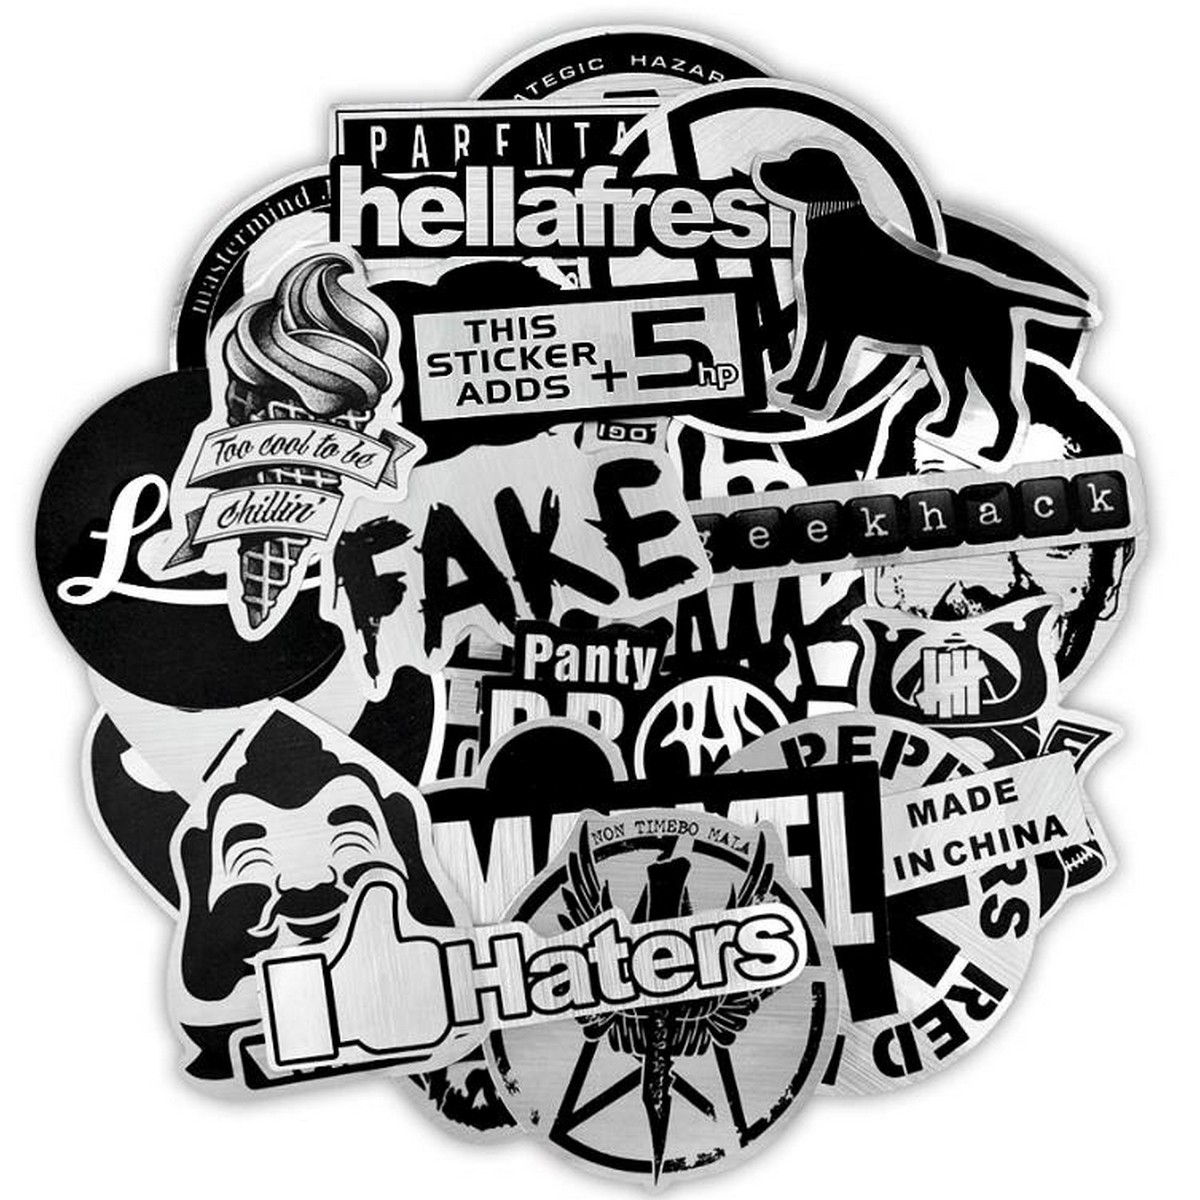 10 Pcs/Pack Metallic Color Black and White Funny Punk Mixed Waterproof Stickers for TV PC Laptop Car Bike Skateboard Guitar